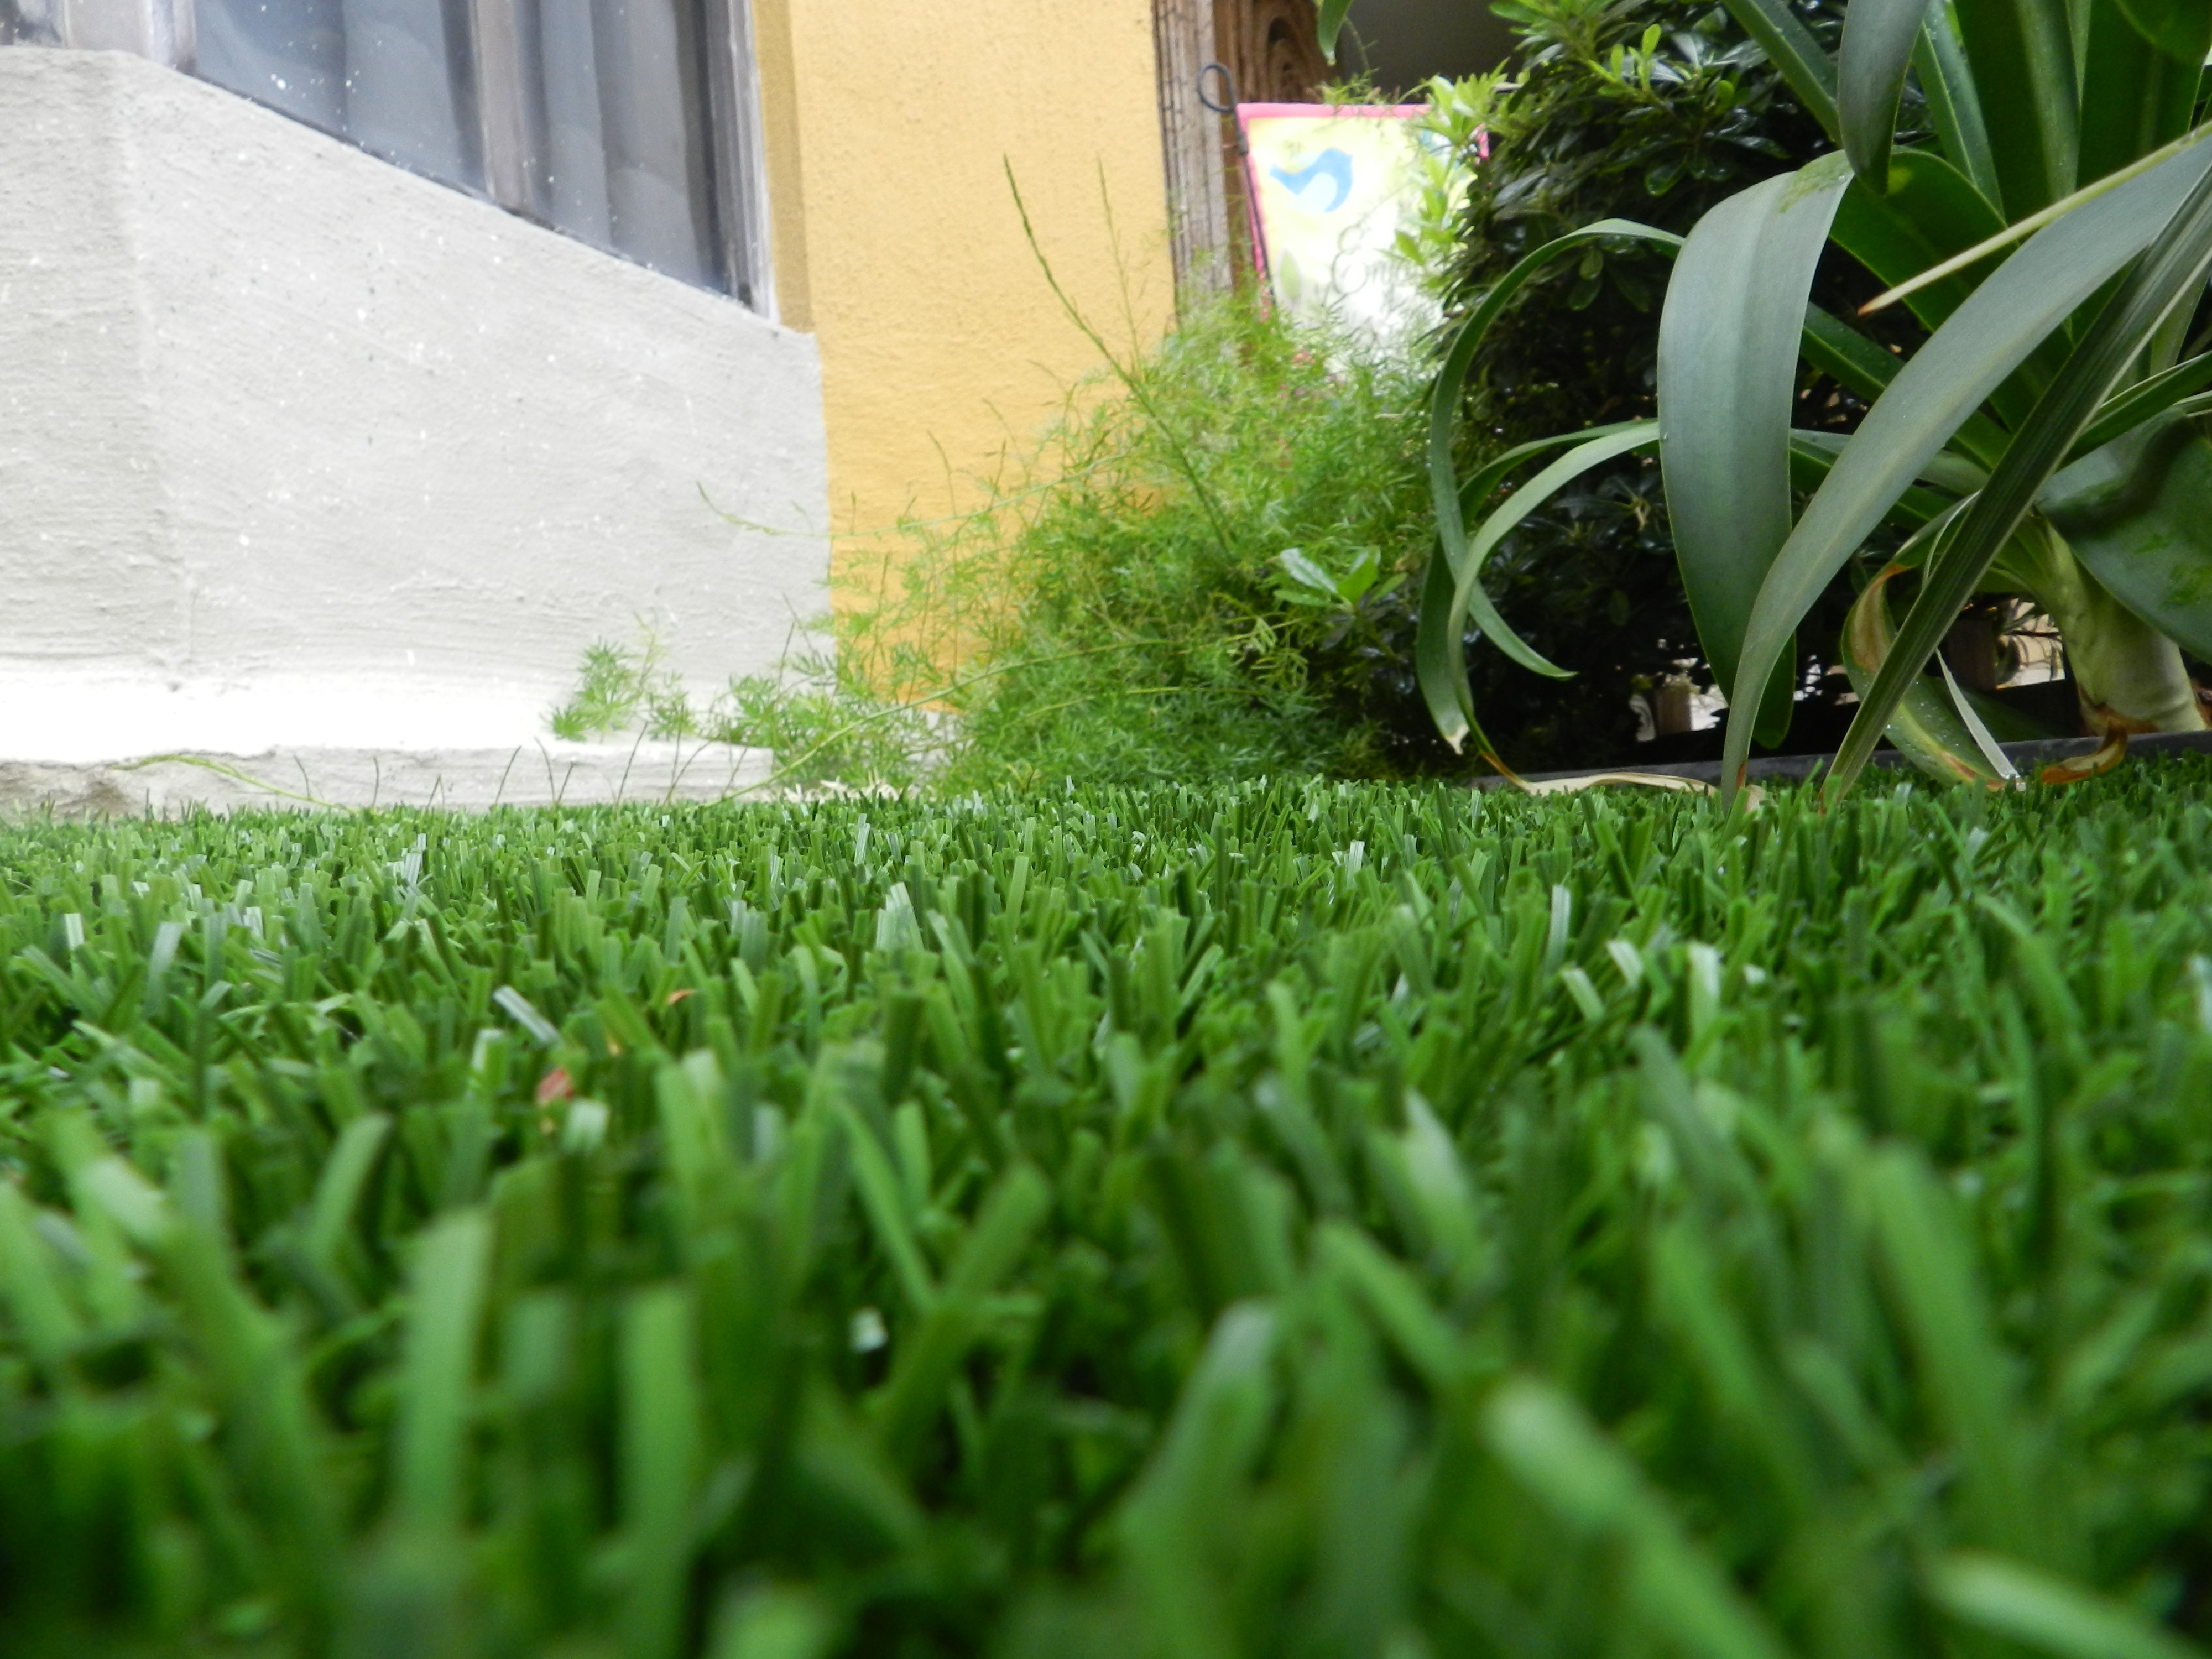 Three impacts that pile height have on artificial grass